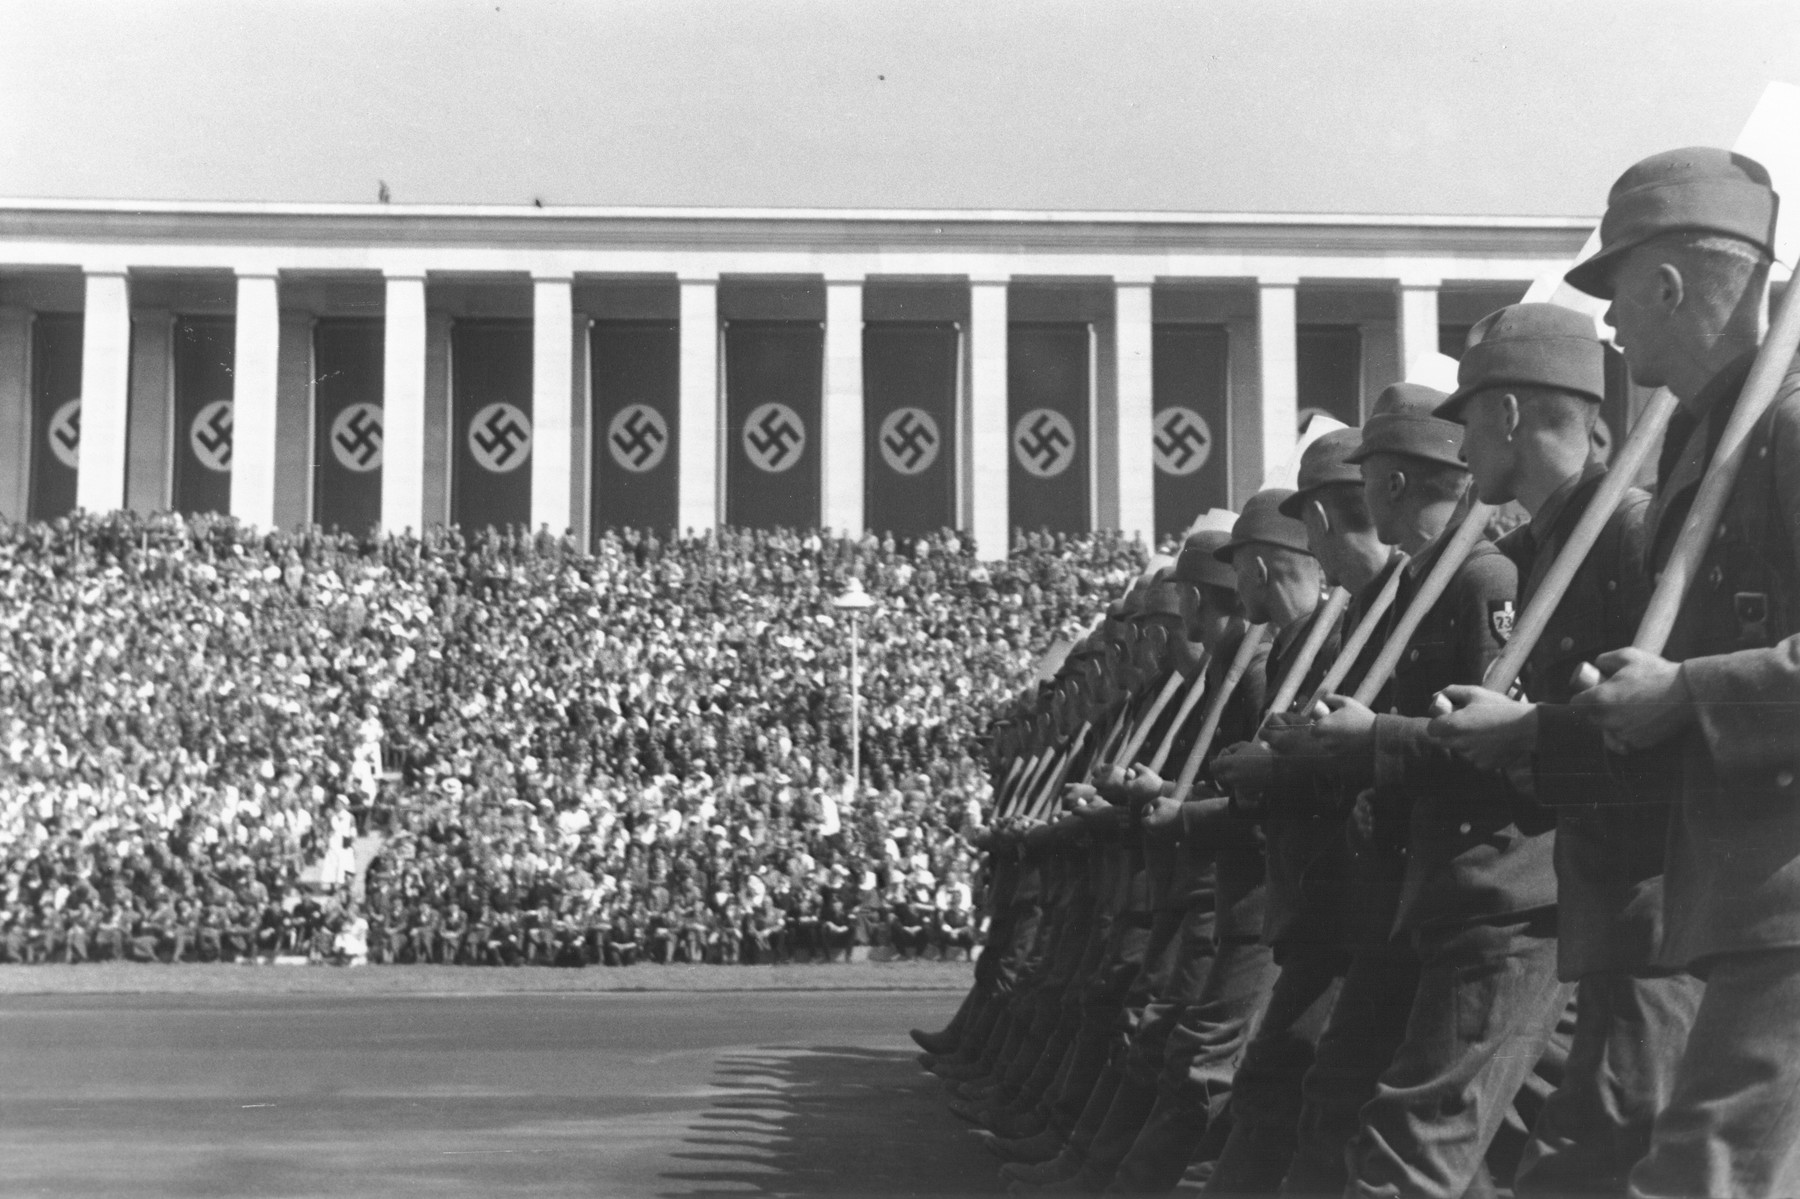 A unit of the DAF (Deutsche Arbeitsfront, or German Labor Service) marches with shovels on the Zeppelinfeld during a rally at  the 1937 Reichsparteitag (Reich Party Day) in Nuremberg.